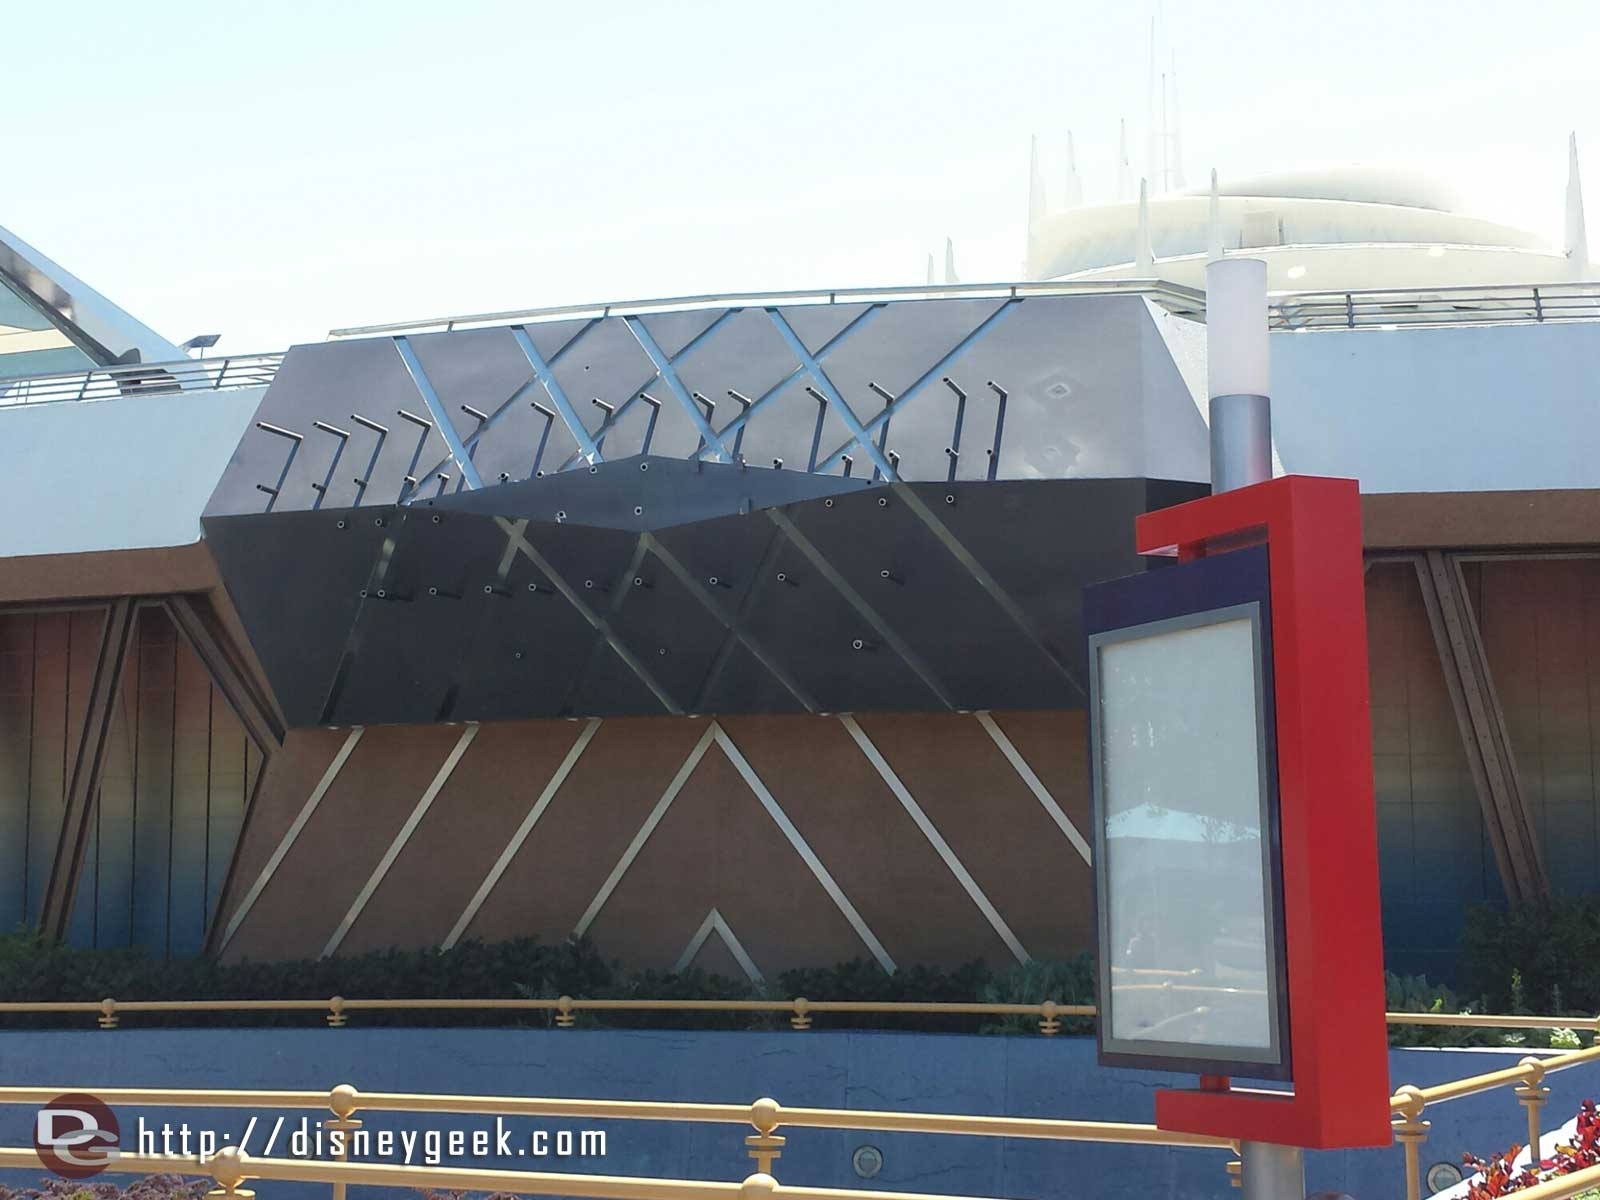 In Tomorrowland the #BigHero6 signage is removed.  A preview of the upcoming Tomorrowland film starts in April